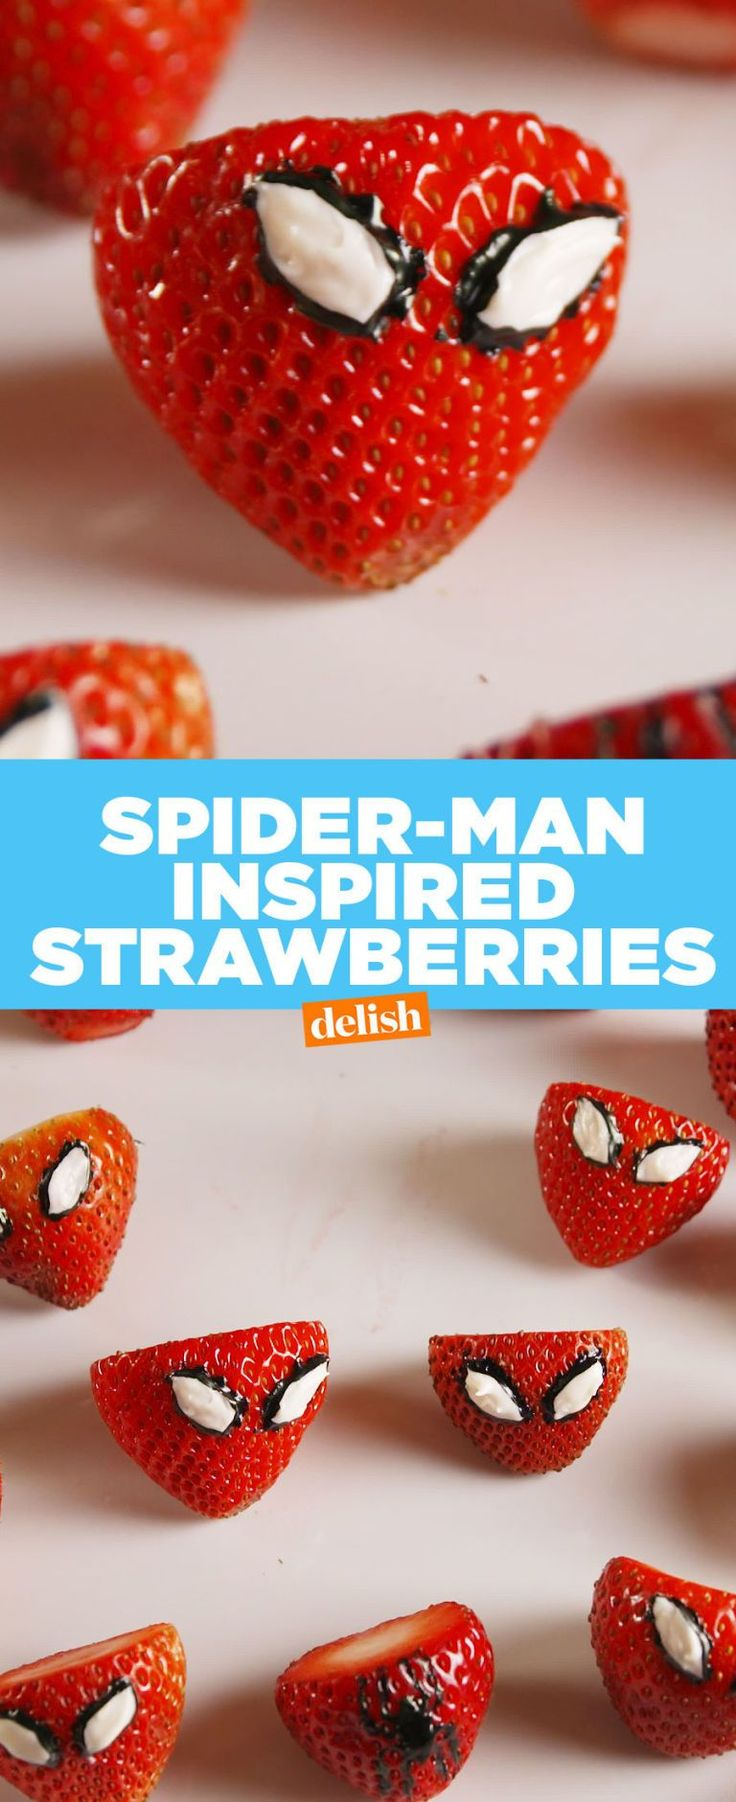 You Can't Call Yourself A Spider-Man Fan If You Haven't Tried These Strawberries - Delish.com